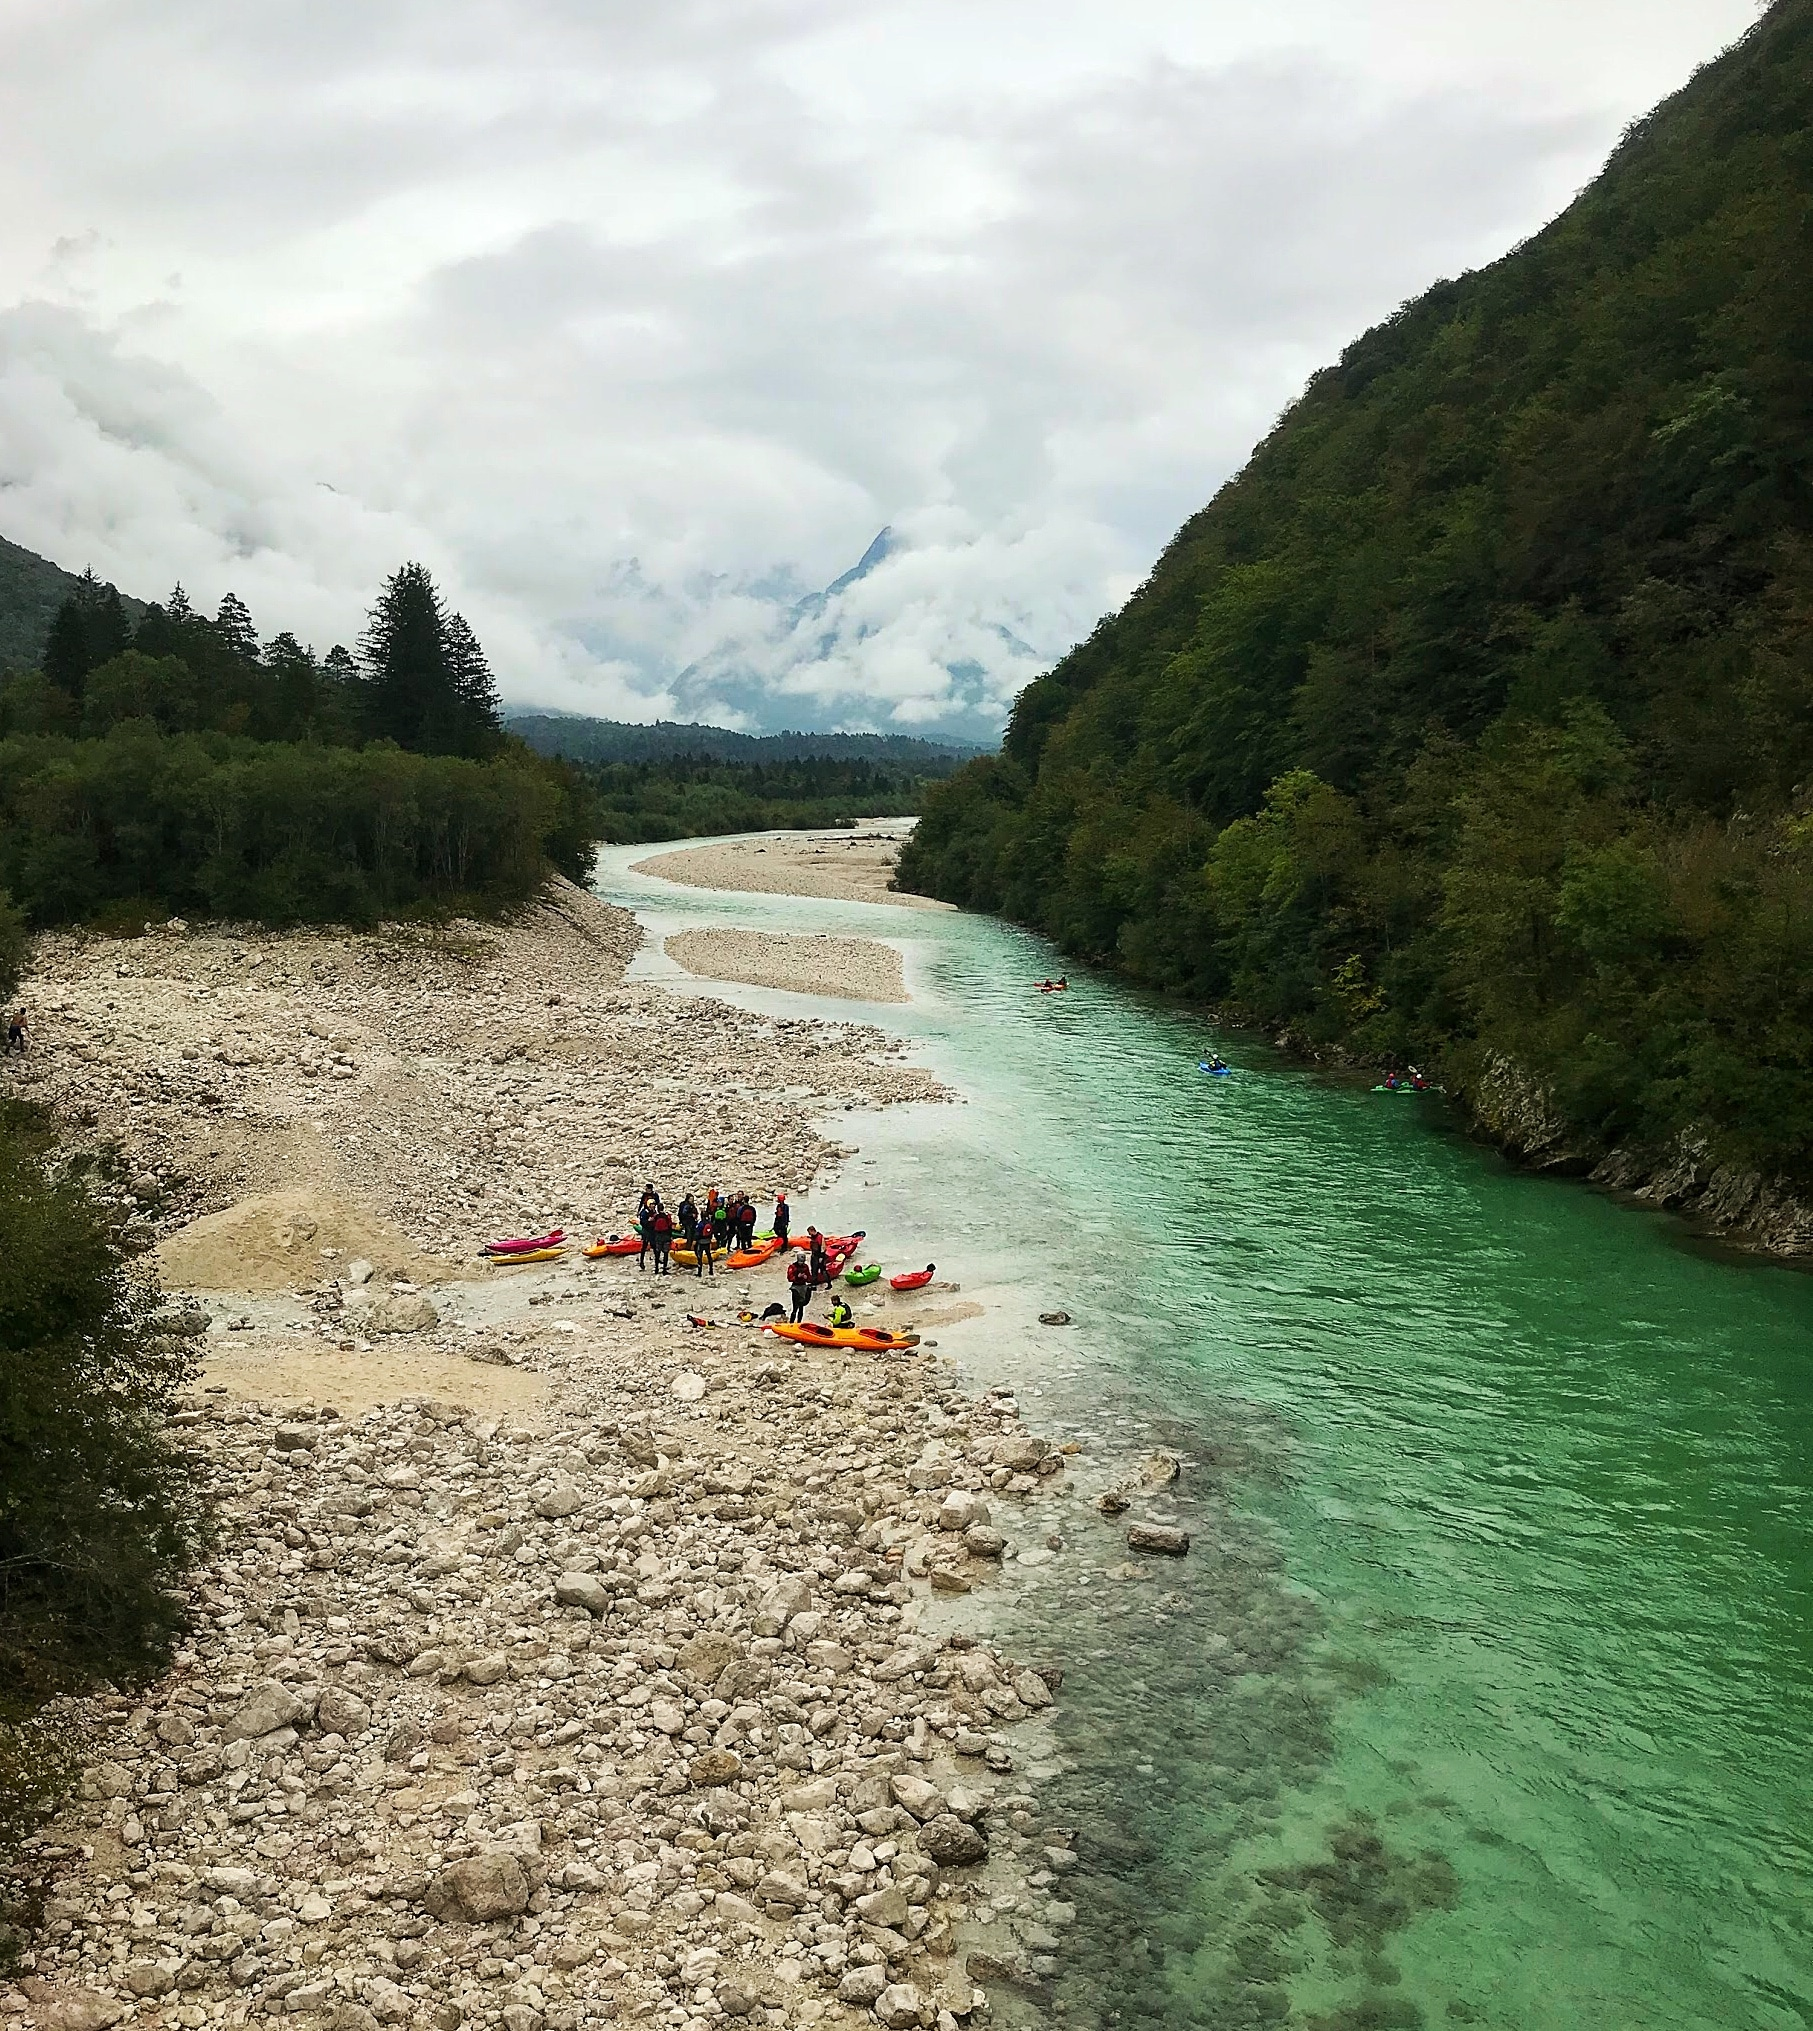 Rafting tour operators taking people down the Soca River